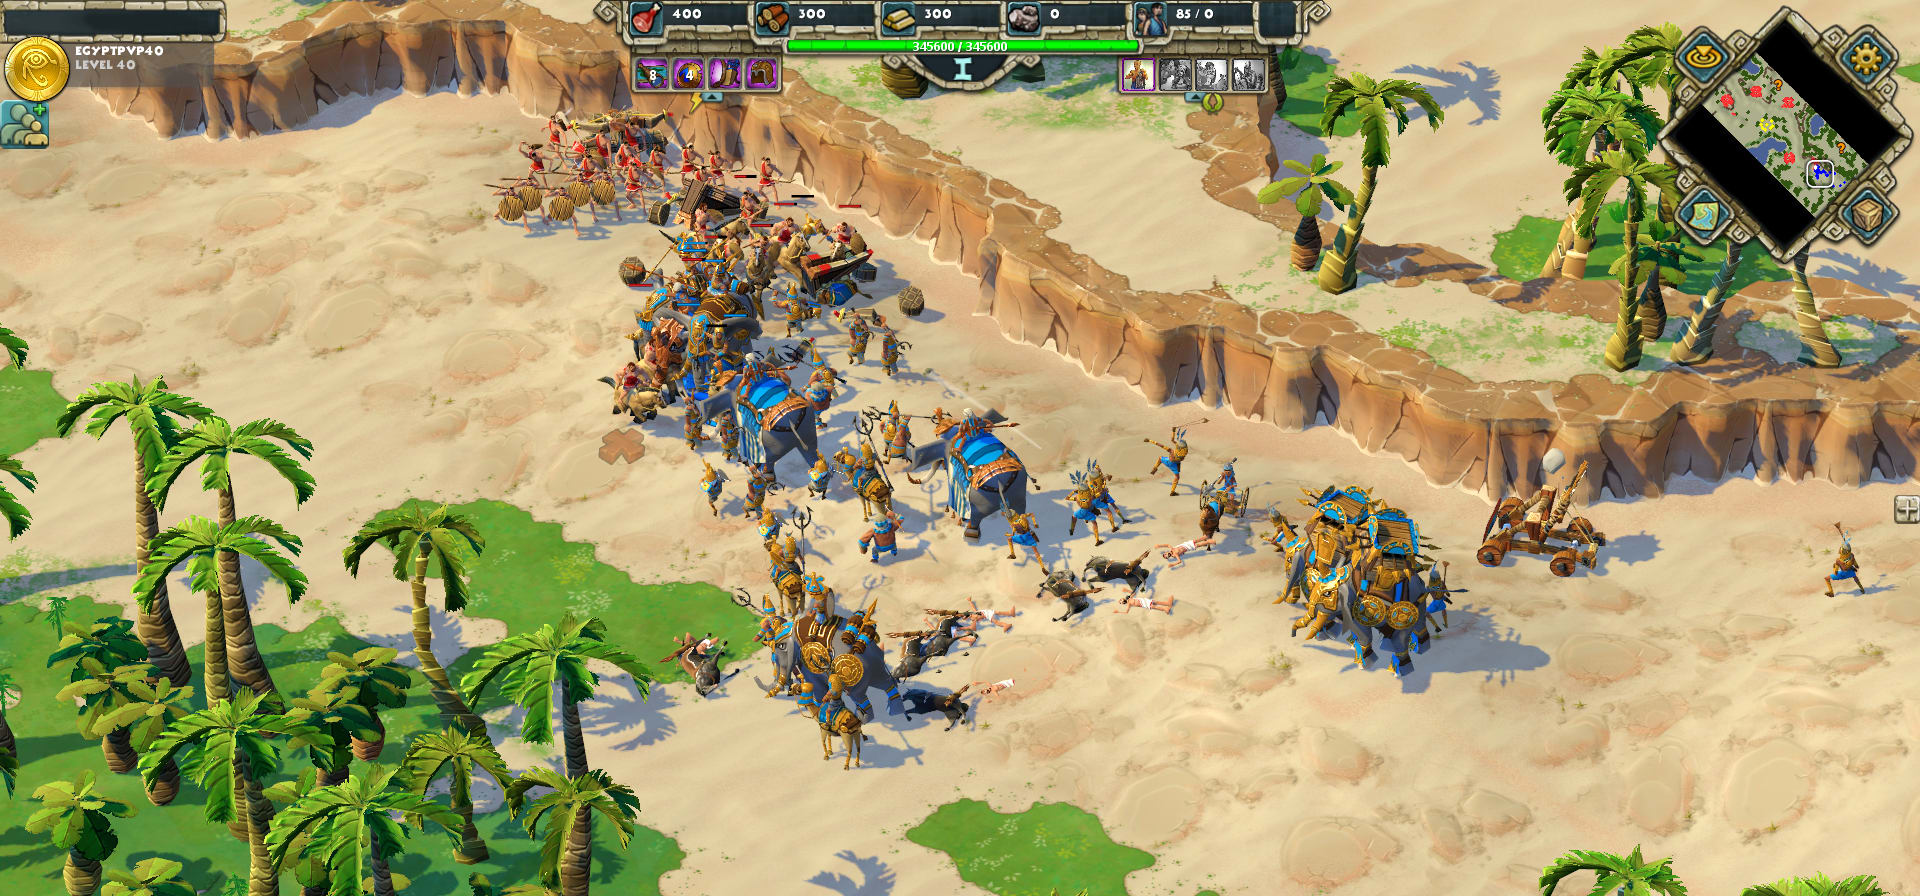 The multiplayer games on age of empires (and some other games) were not working with 2.12-staging. This is now fixed with 2.13 release.